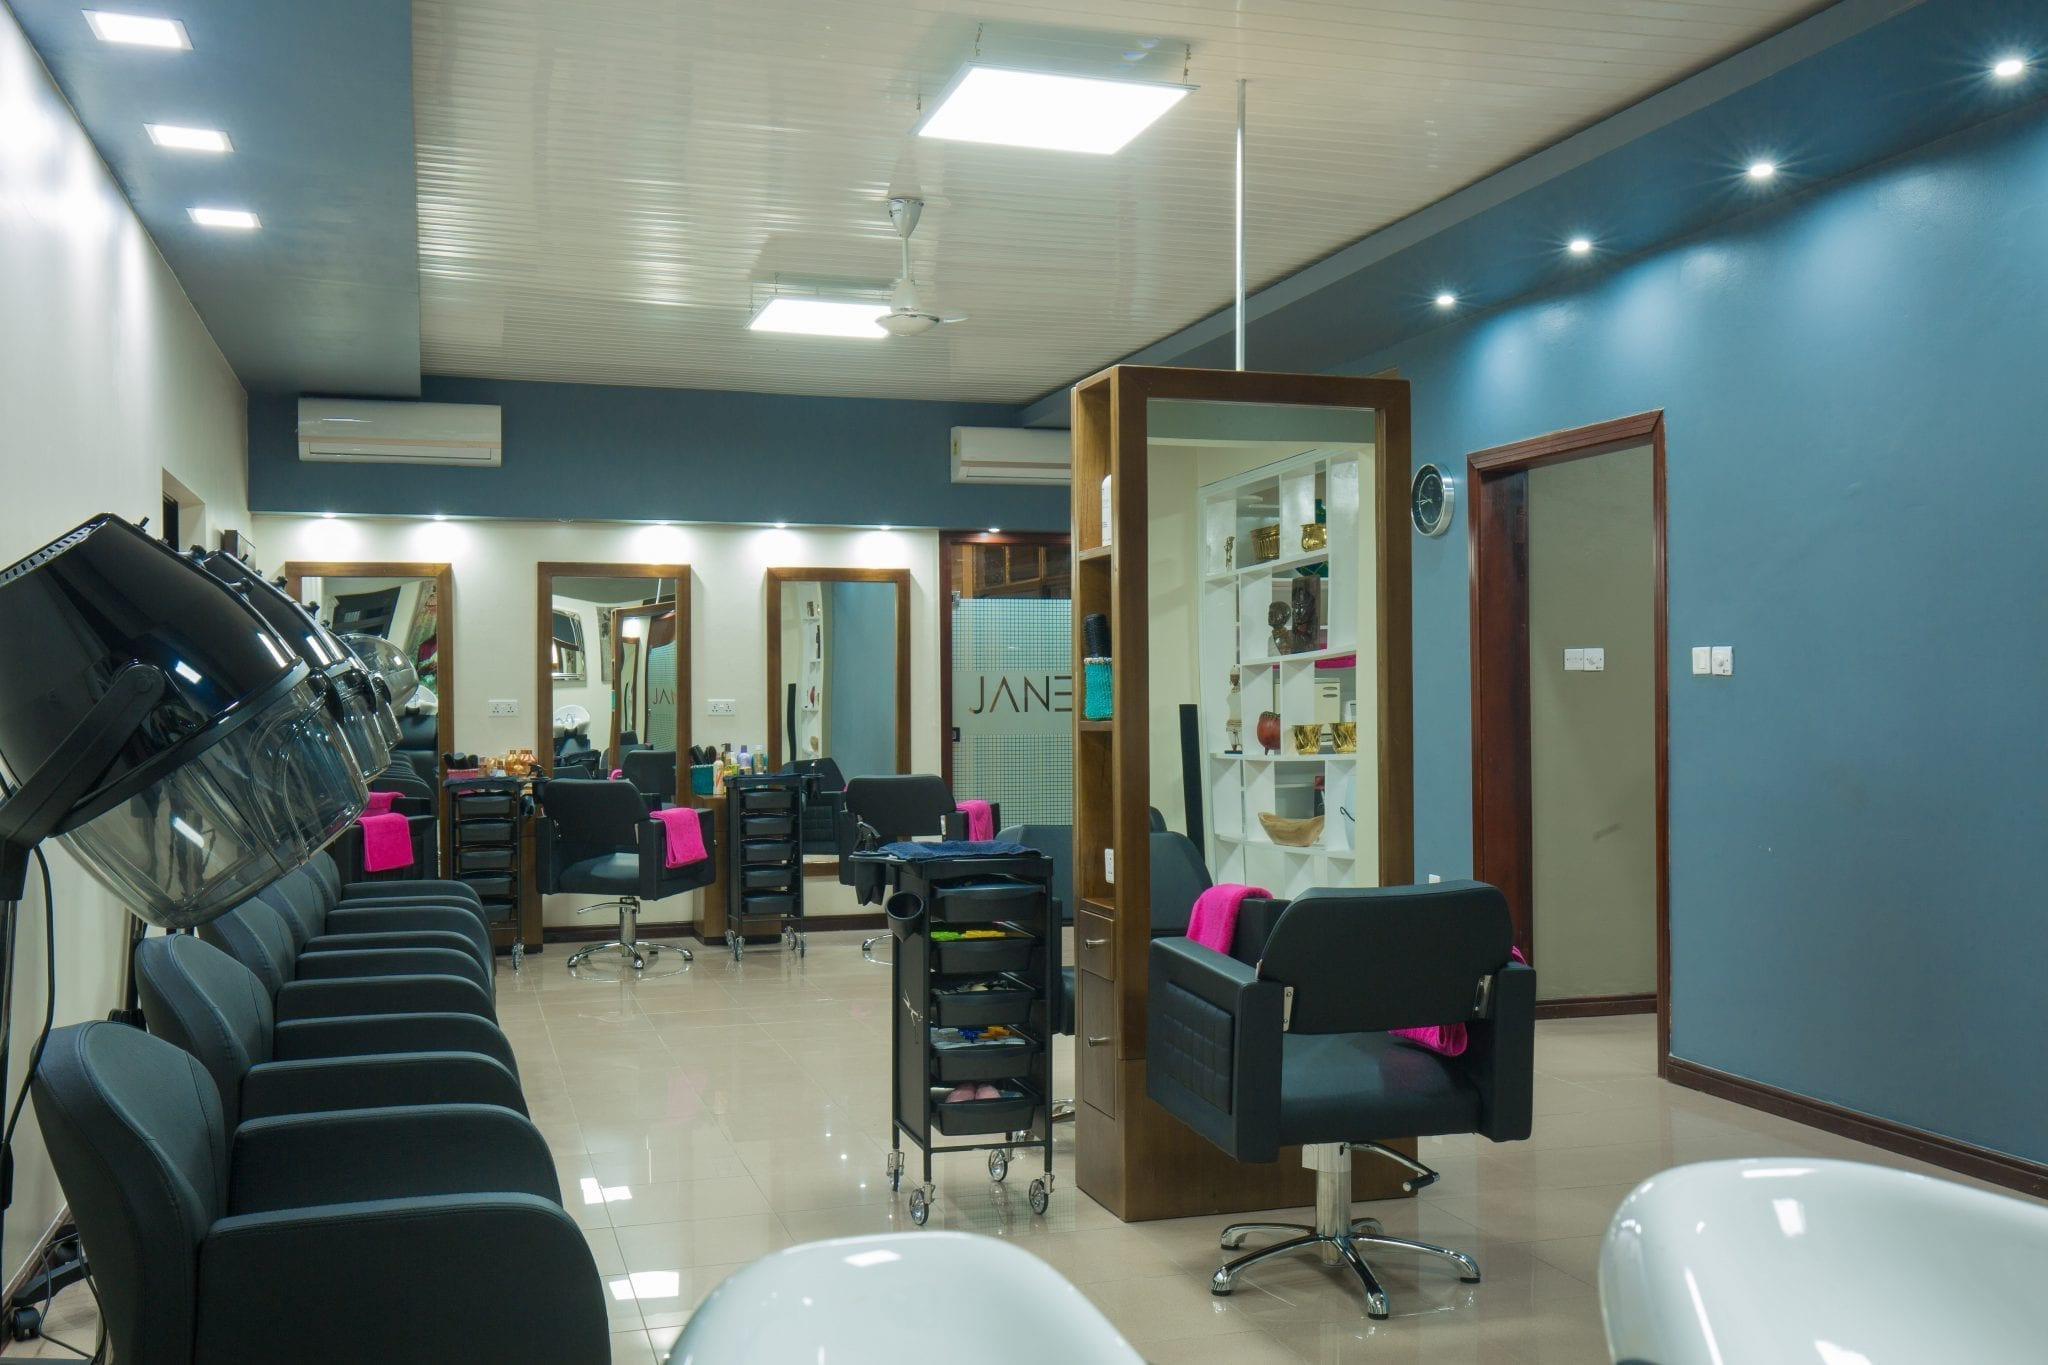 Jane m salon and spa look beautiful feel elegant for Looks salon and spa